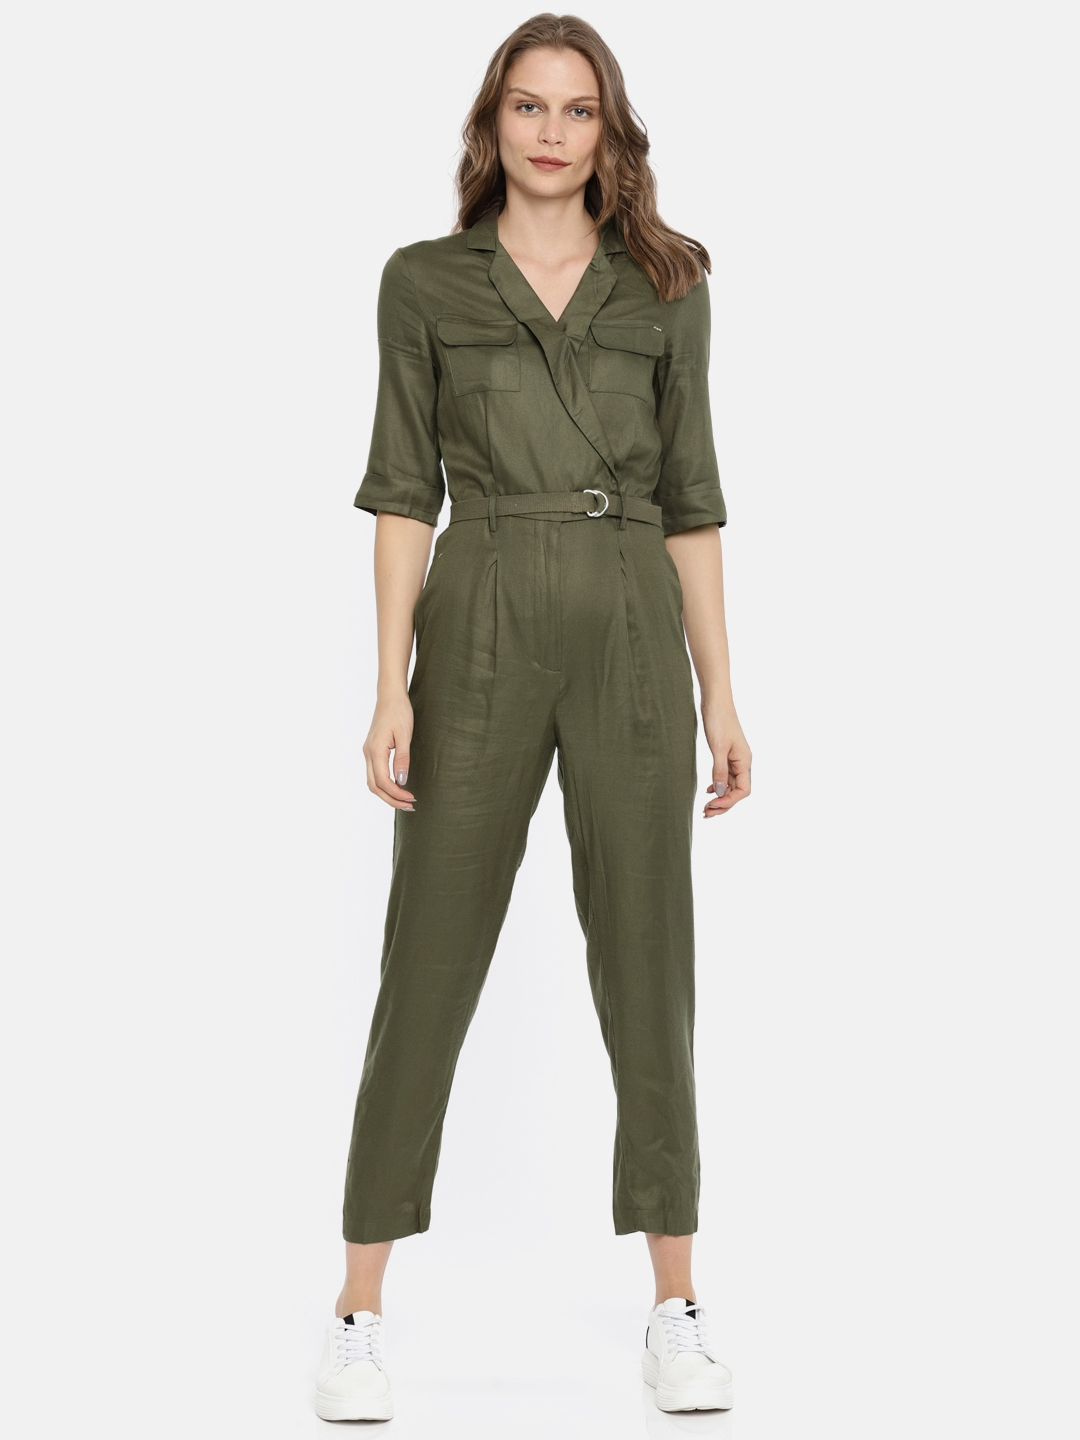 c525d9ebd5fe Buy ONLY Olive Green Solid Basic Jumpsuit - Jumpsuit for Women ...